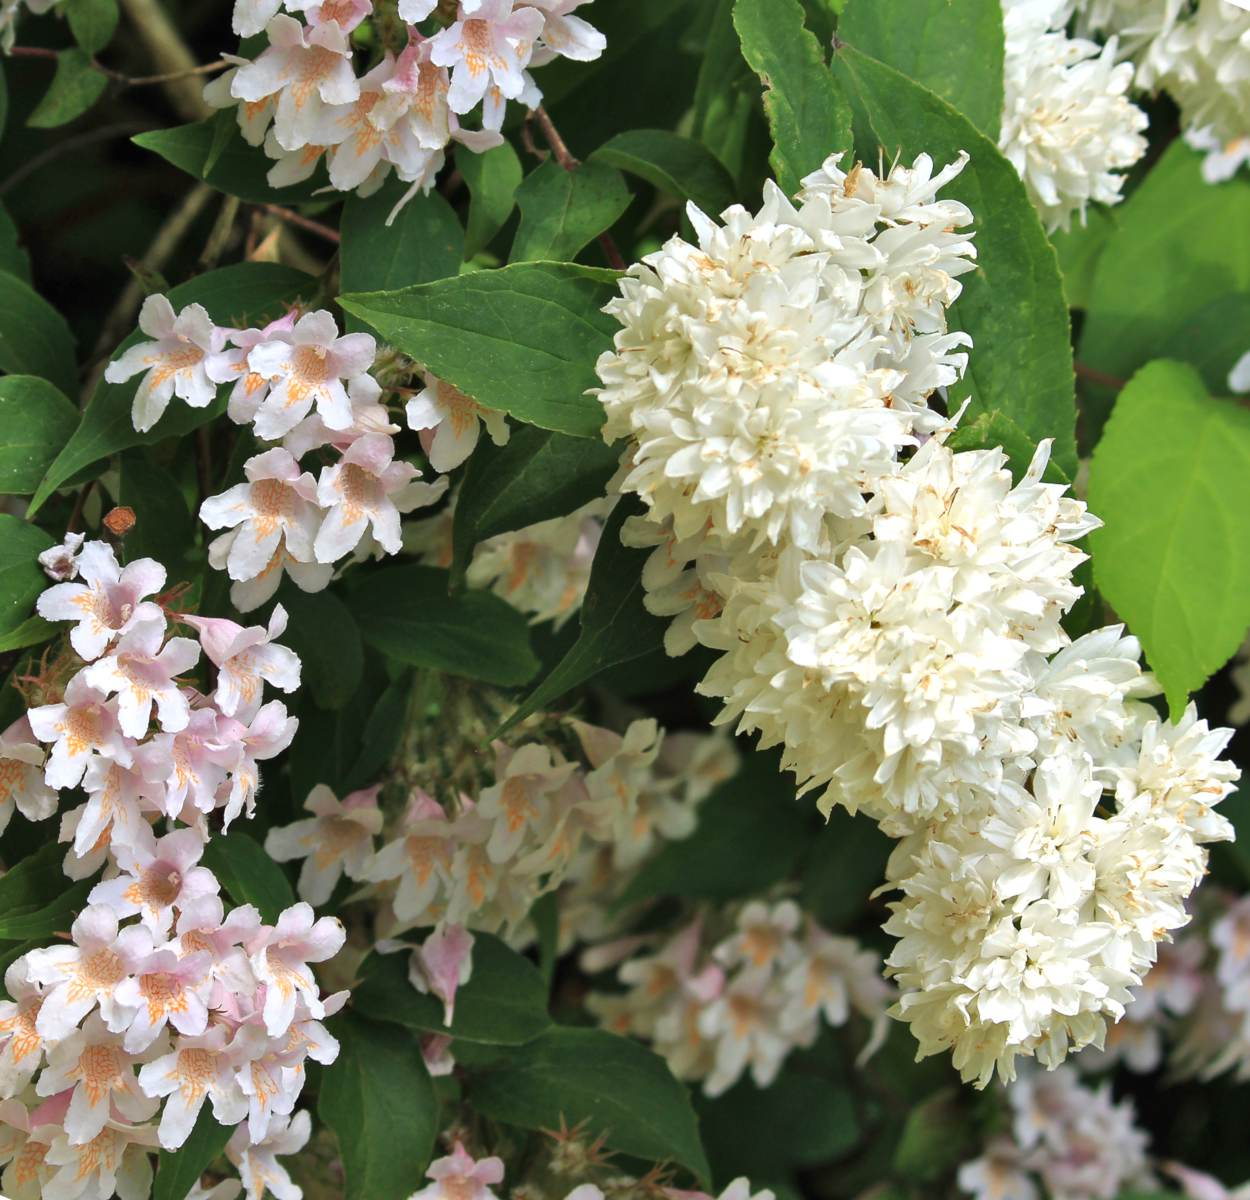 Two varieties of deutzia flowering next to each other.